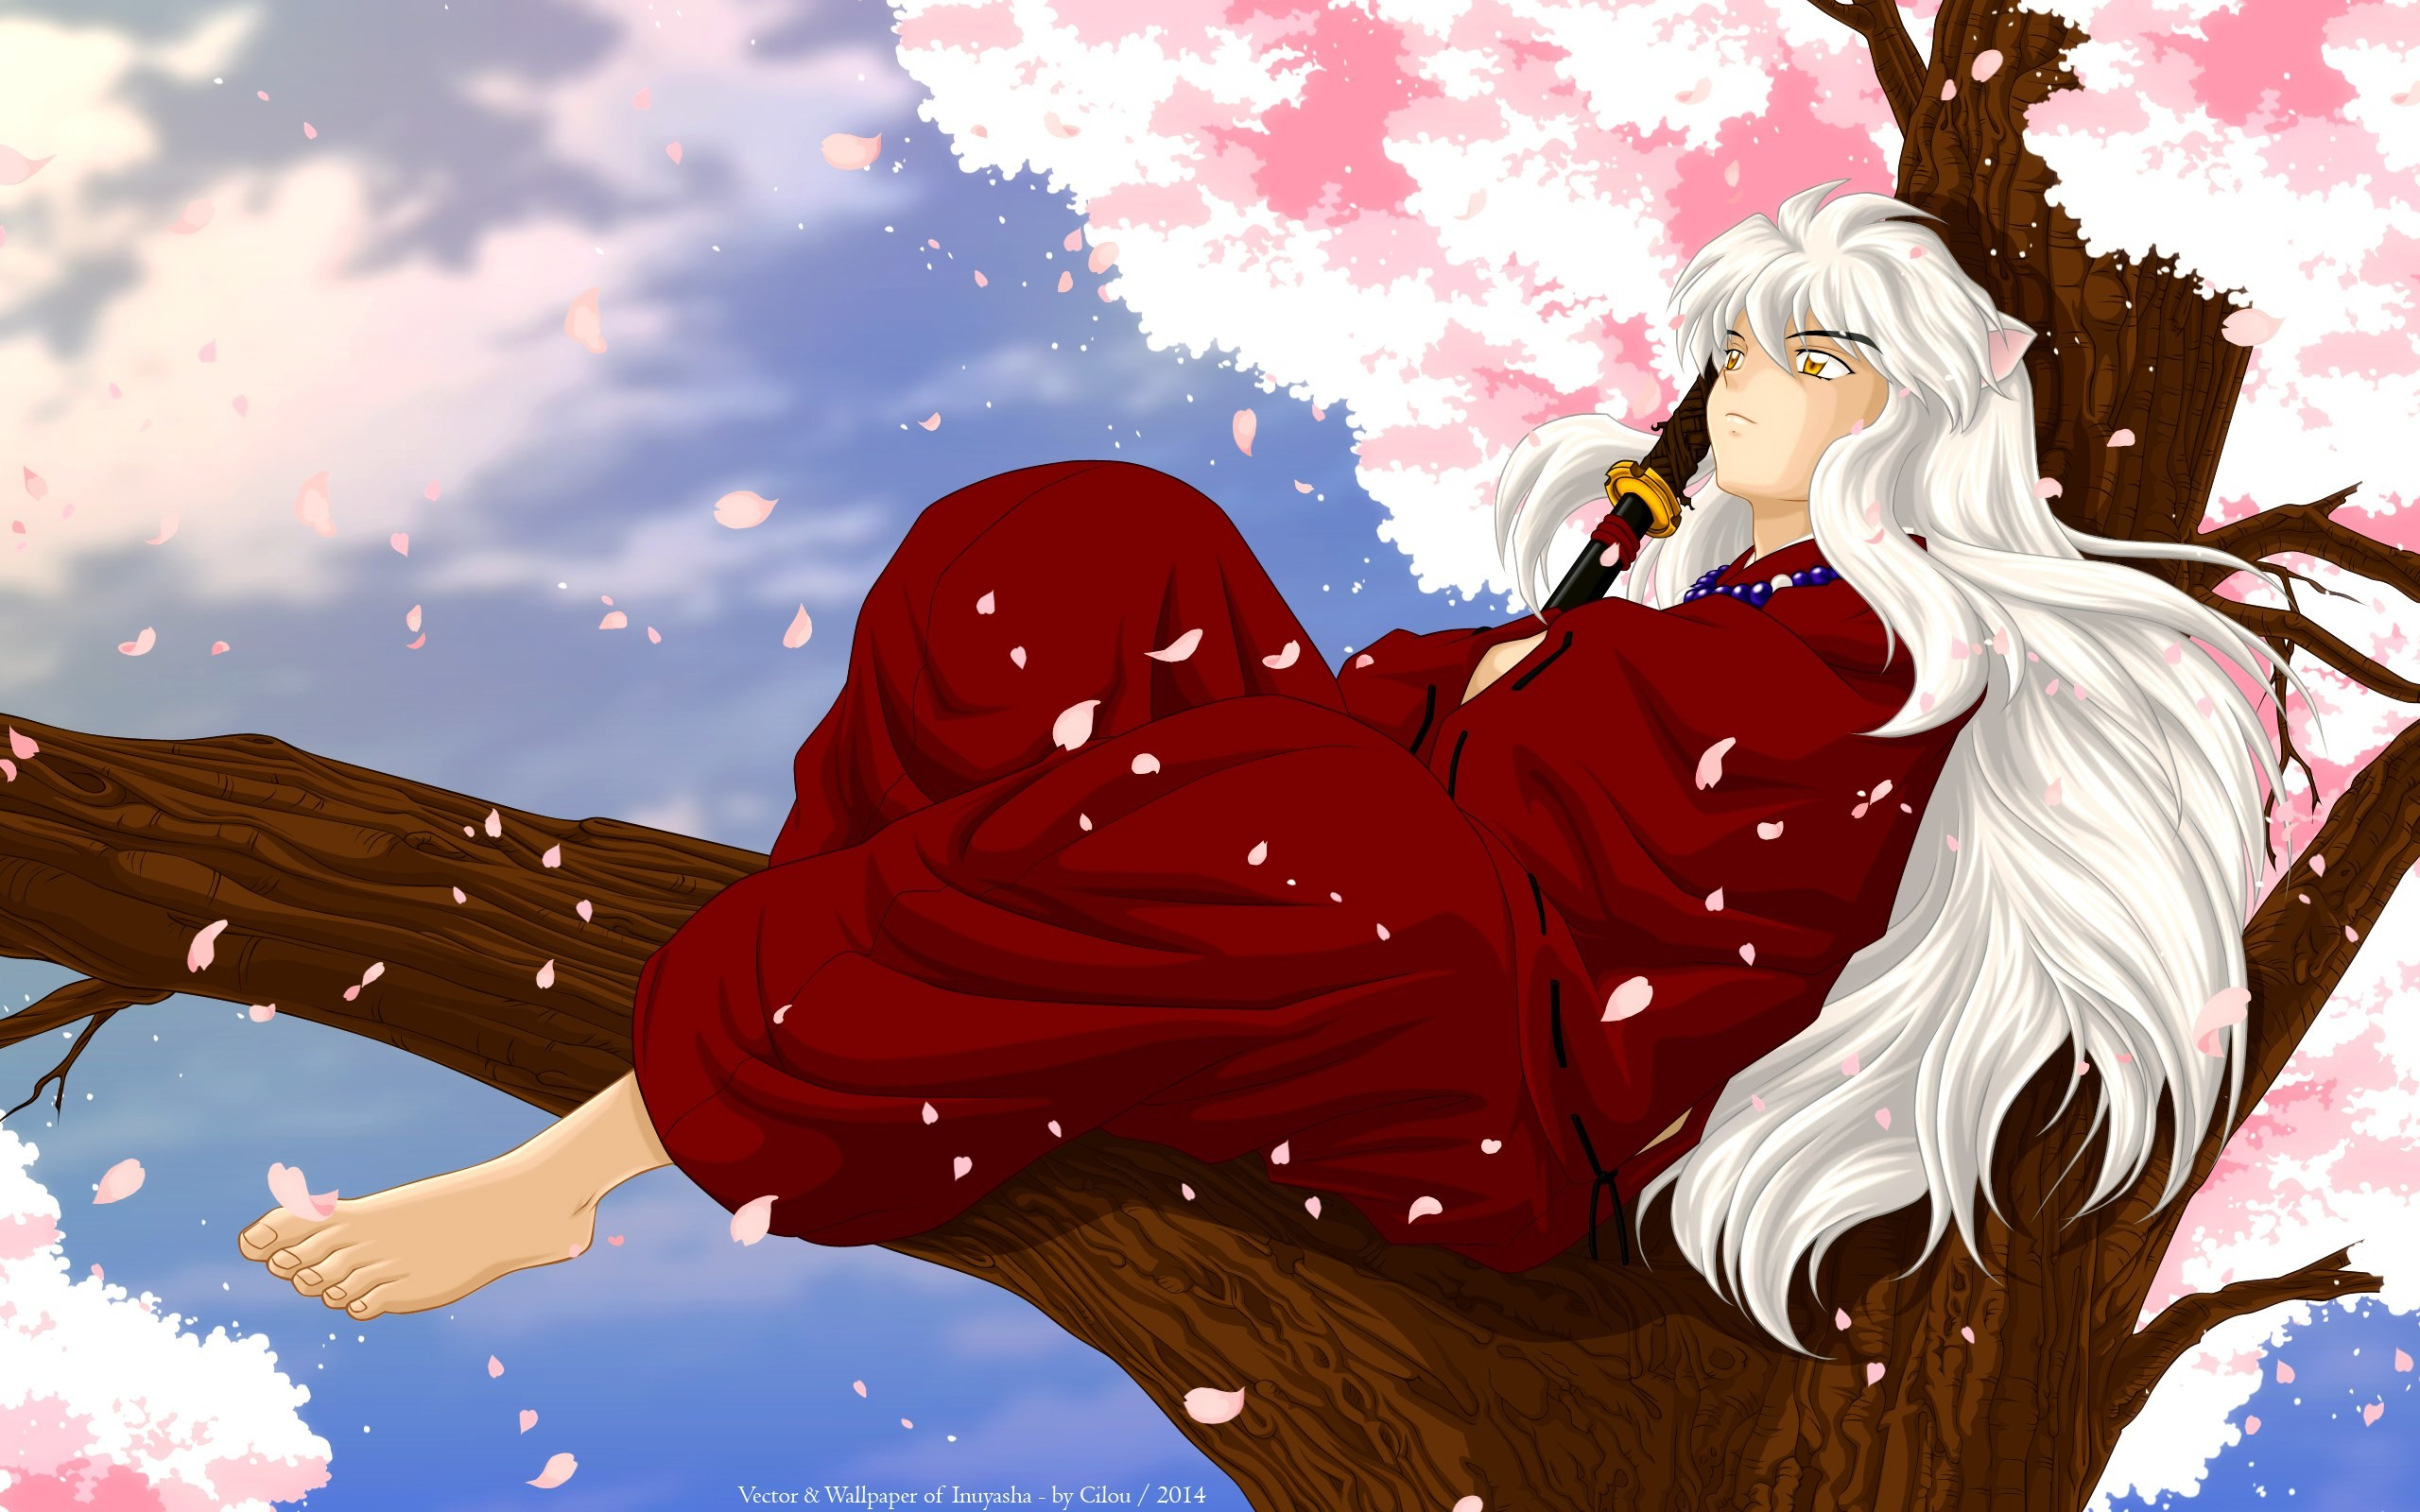 inuyasha picture free hd widescreen – inuyasha category